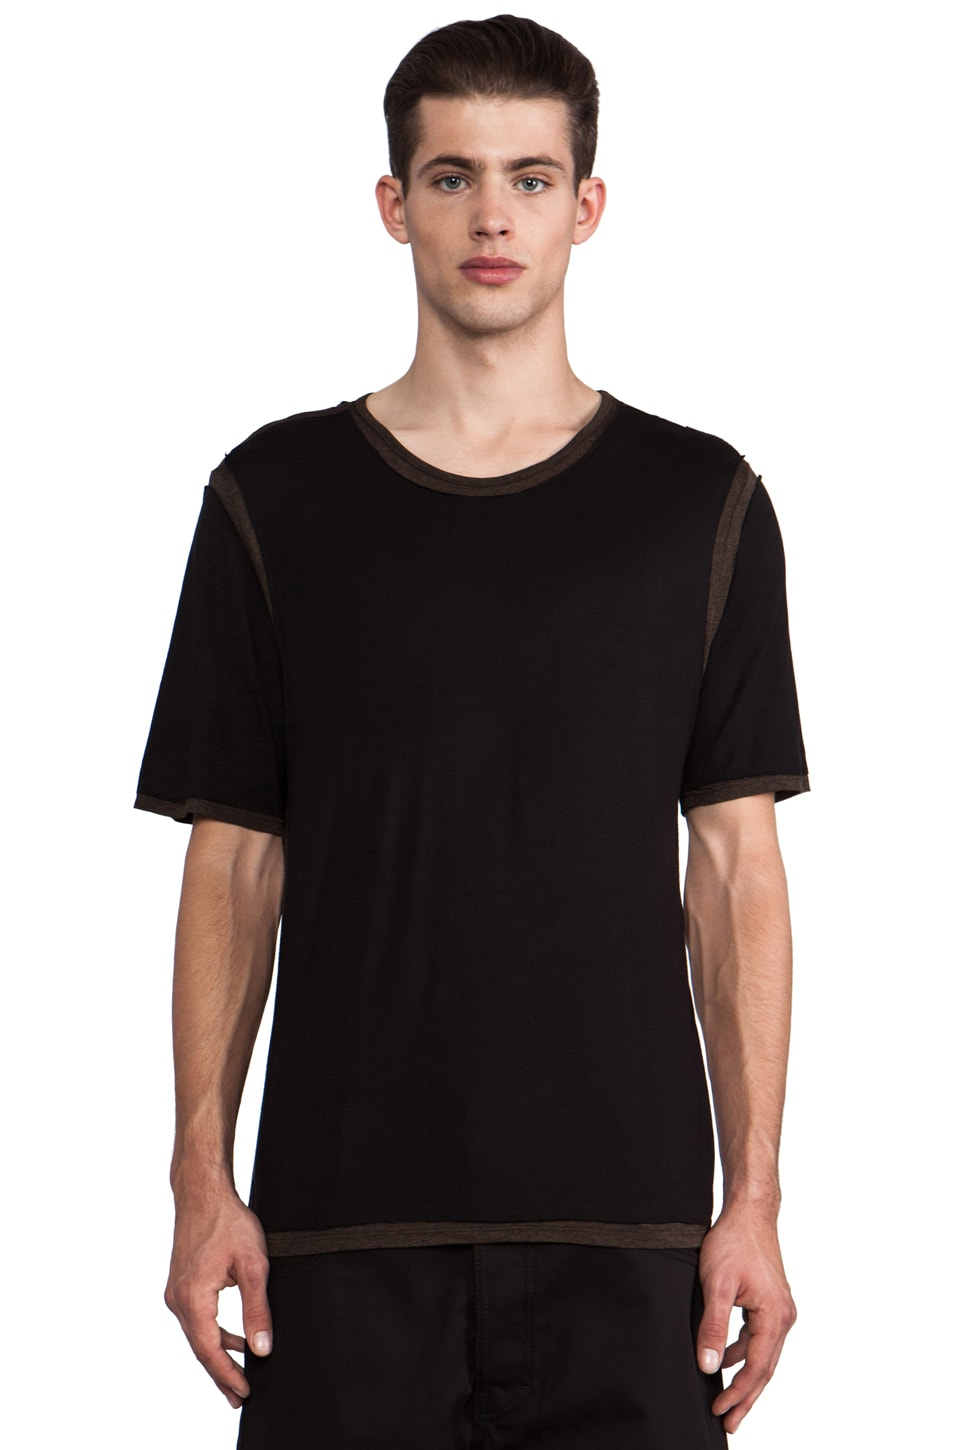 B:Scott Double Layer Tee in Brown/Black